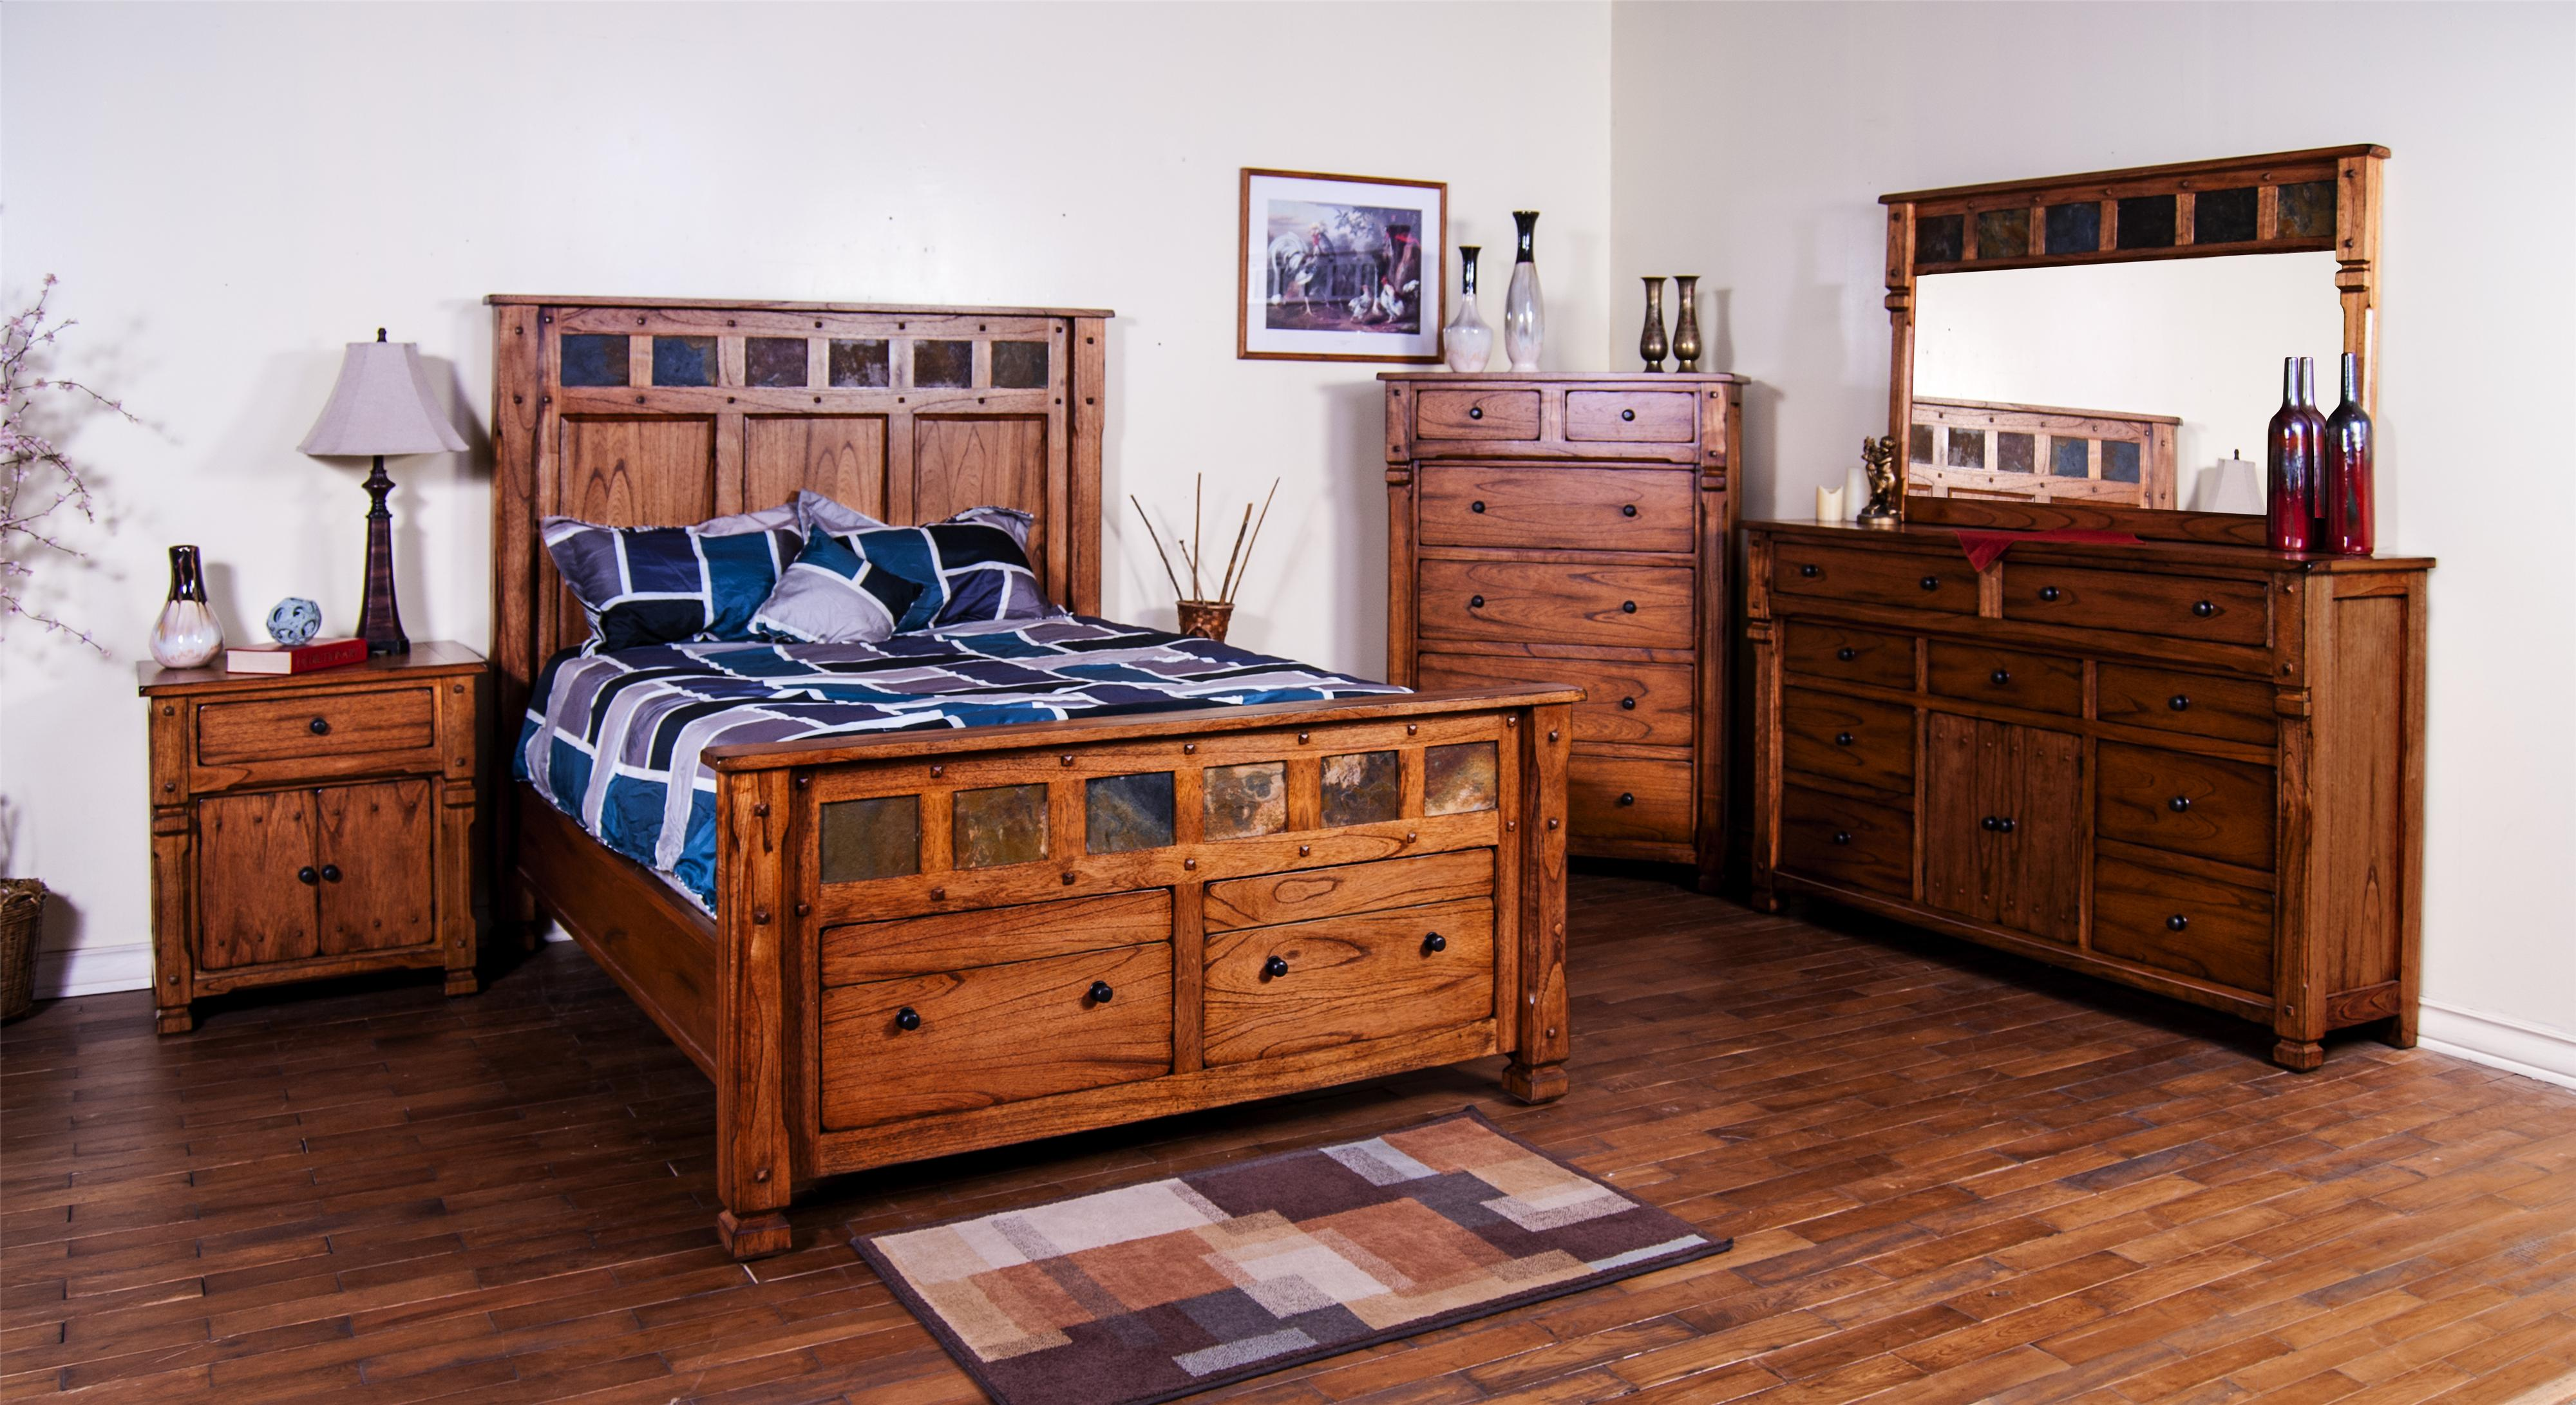 Merveilleux Sedona (ro) By Sunny Designs   John V Schultz Furniture   Sunny Designs  Sedona Dealer